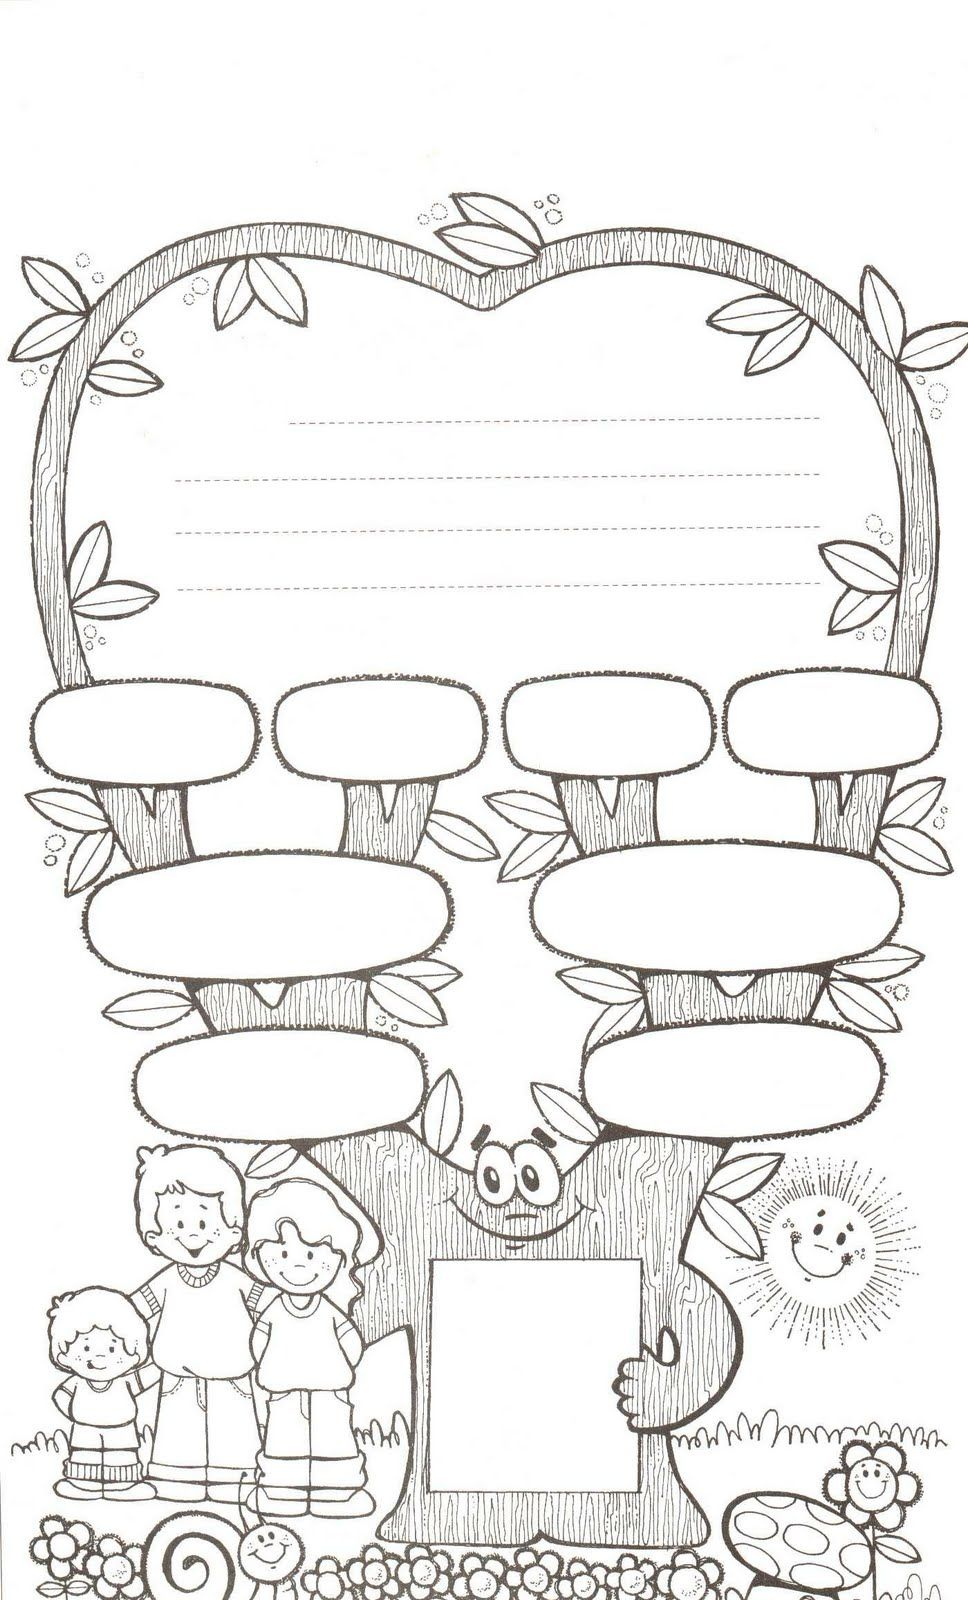 Family Tree Worksheet Printable – Family Worksheet